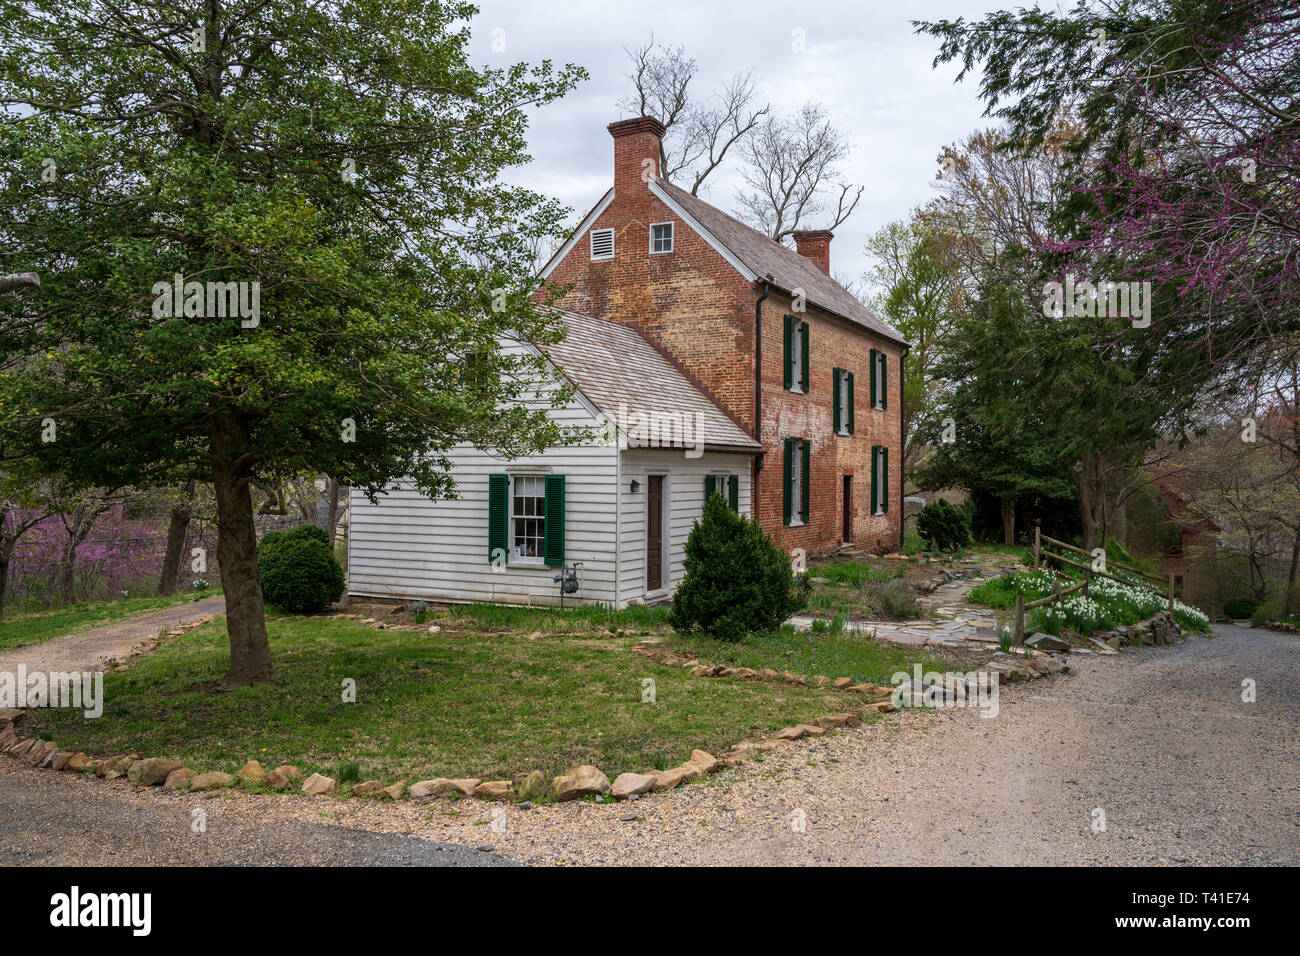 Historic red brick house on the grounds of Colvin Run Mill in Great Falls, VA, USA. - Stock Image